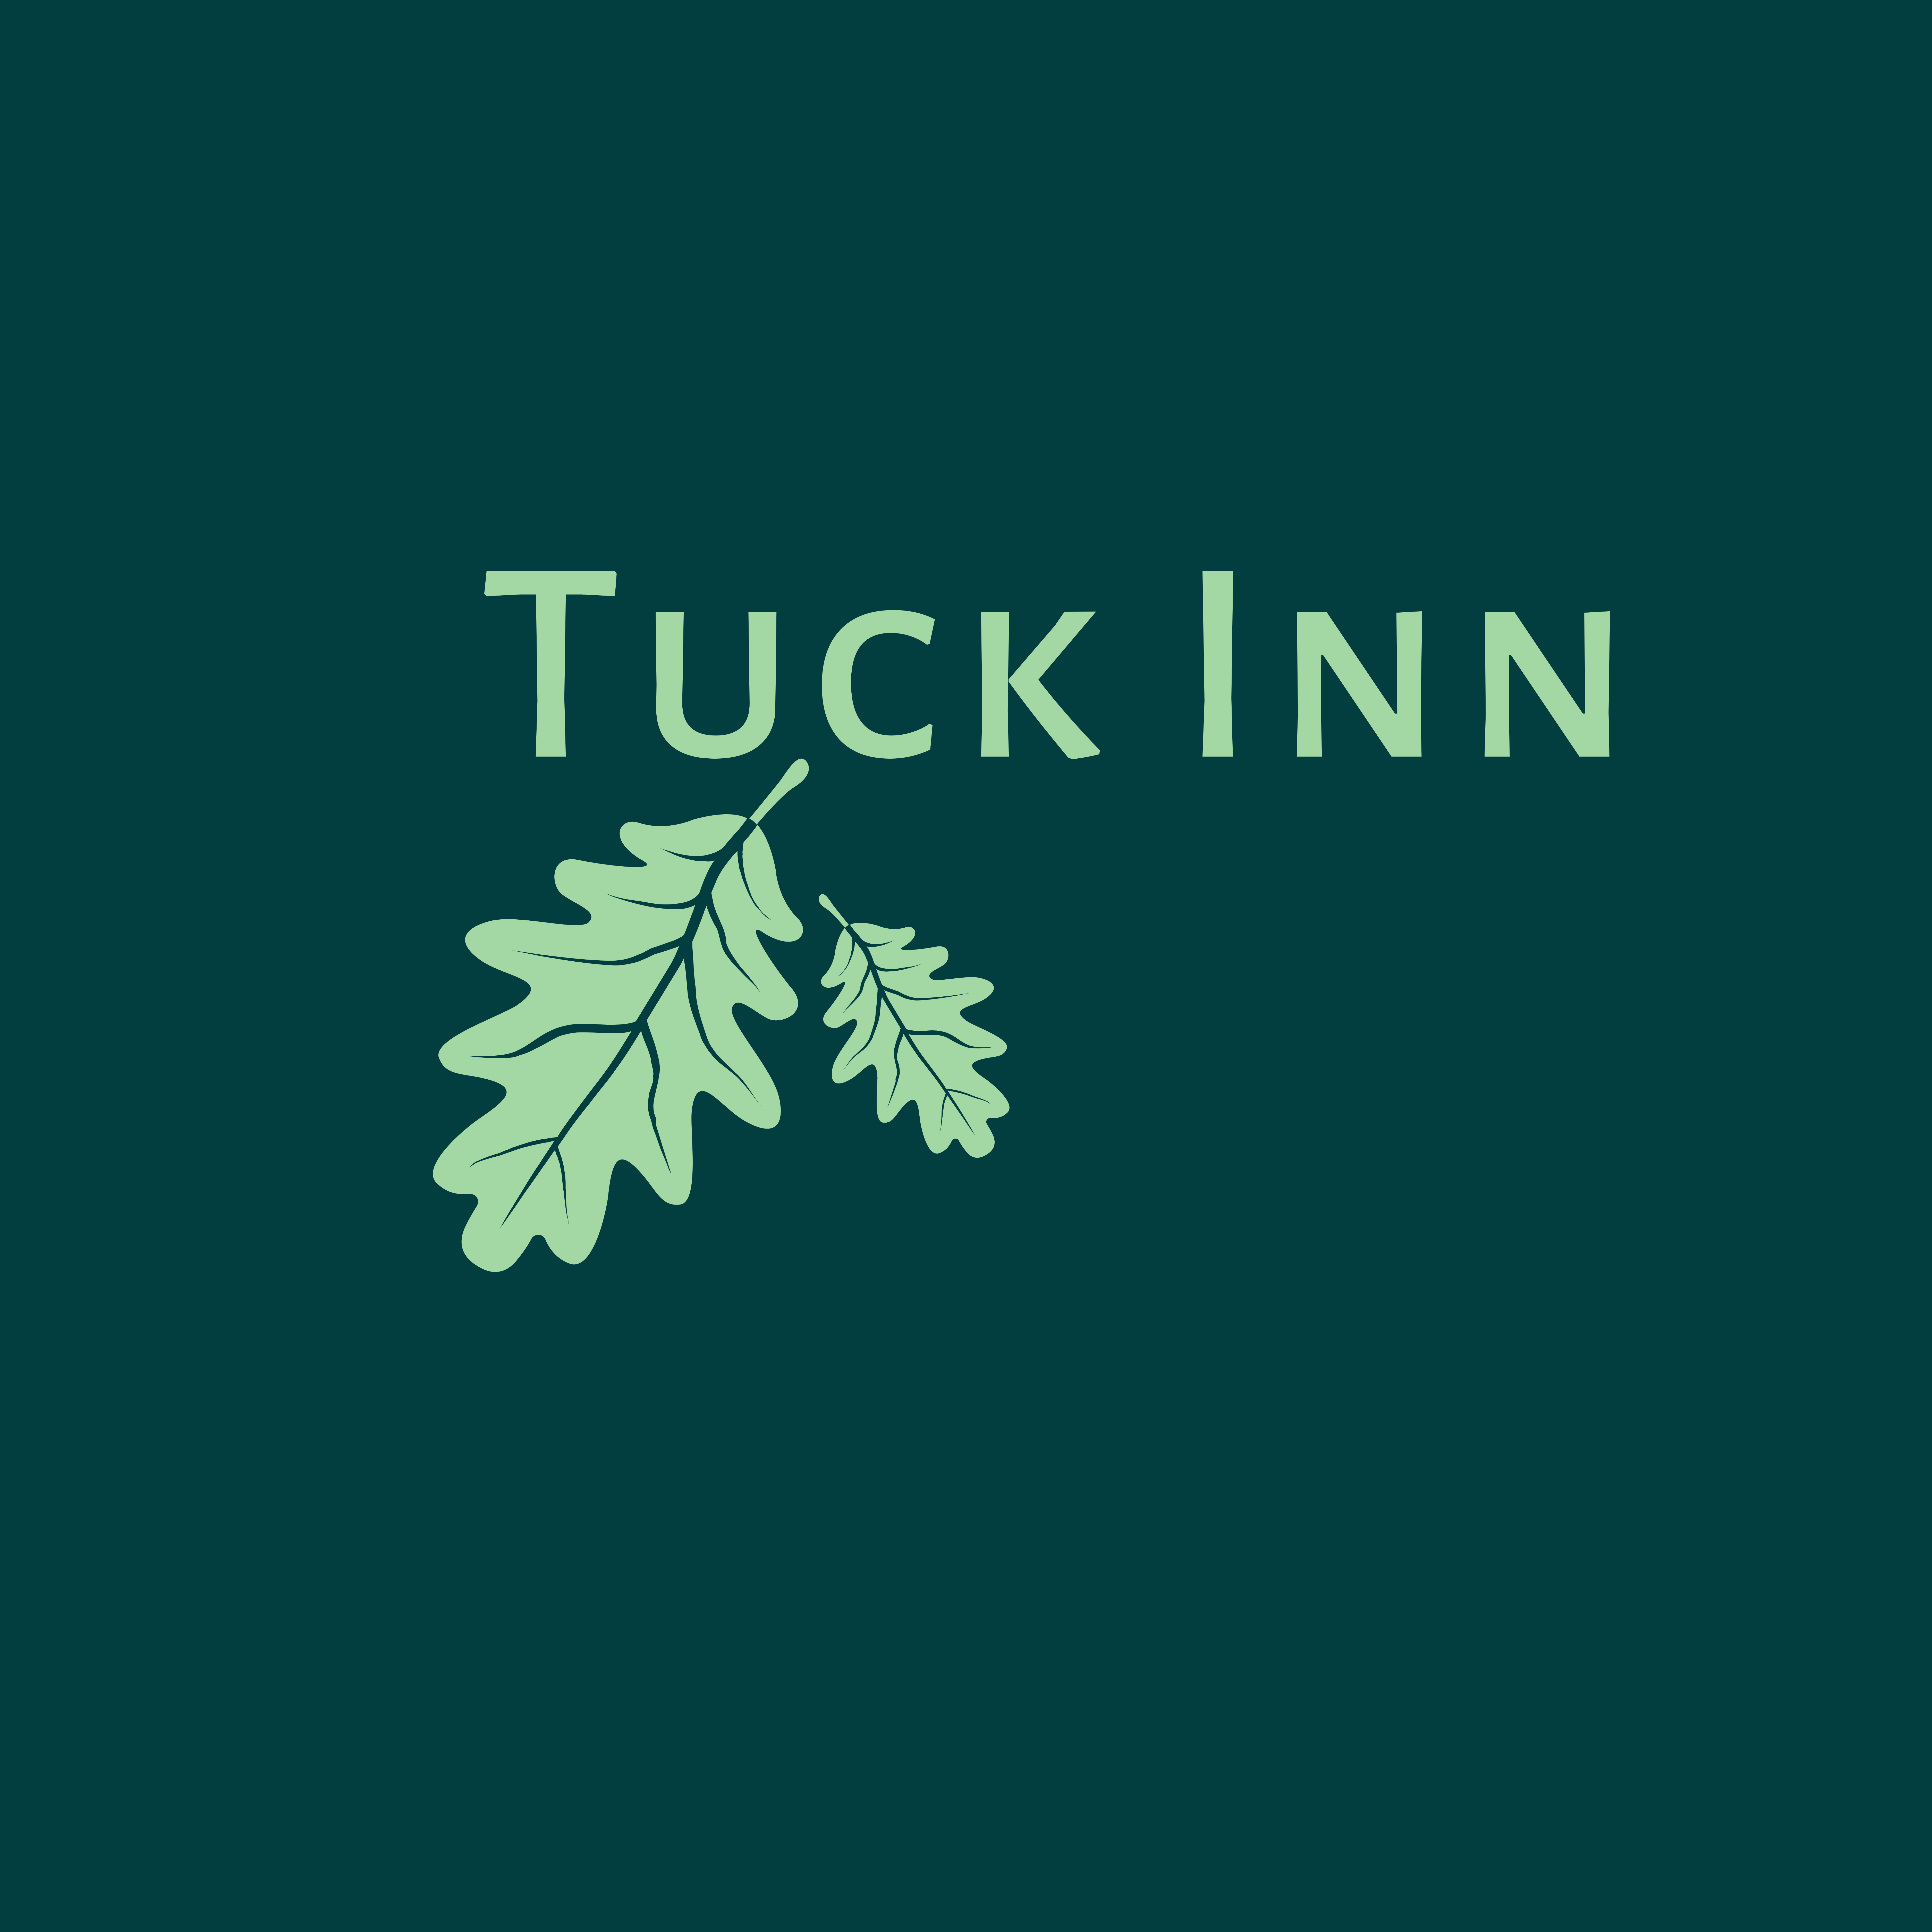 Tuck Inn Yarra Valley